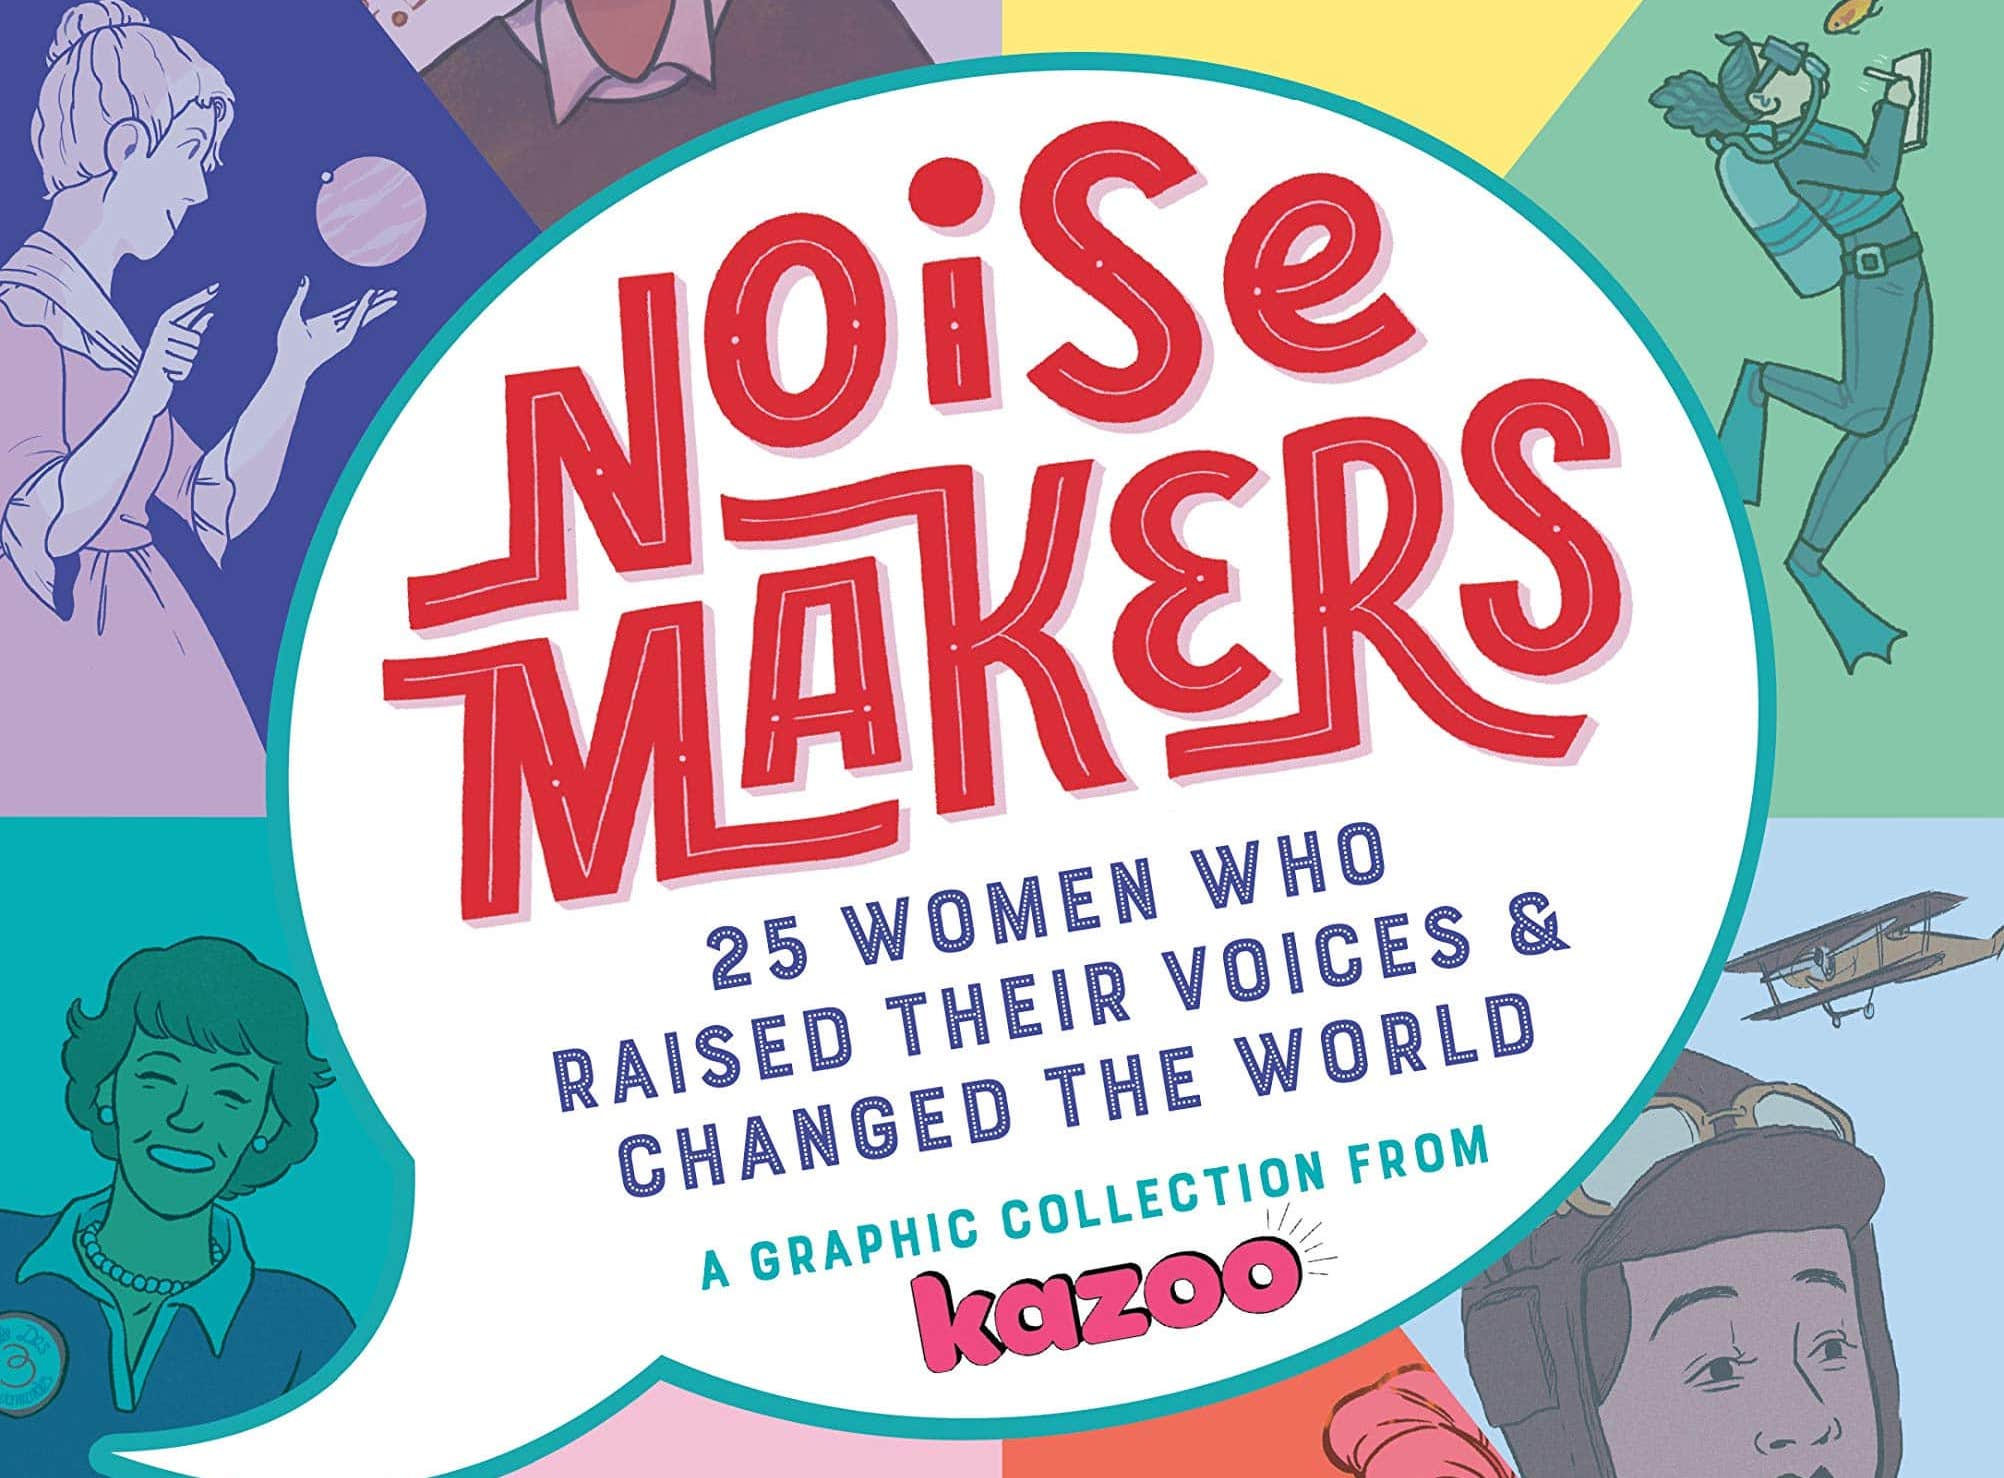 Kazoo Magazine to feature 25 extraordinary women in Noisemakers: 25 Women Who Raised Their Voices & Changed the World.